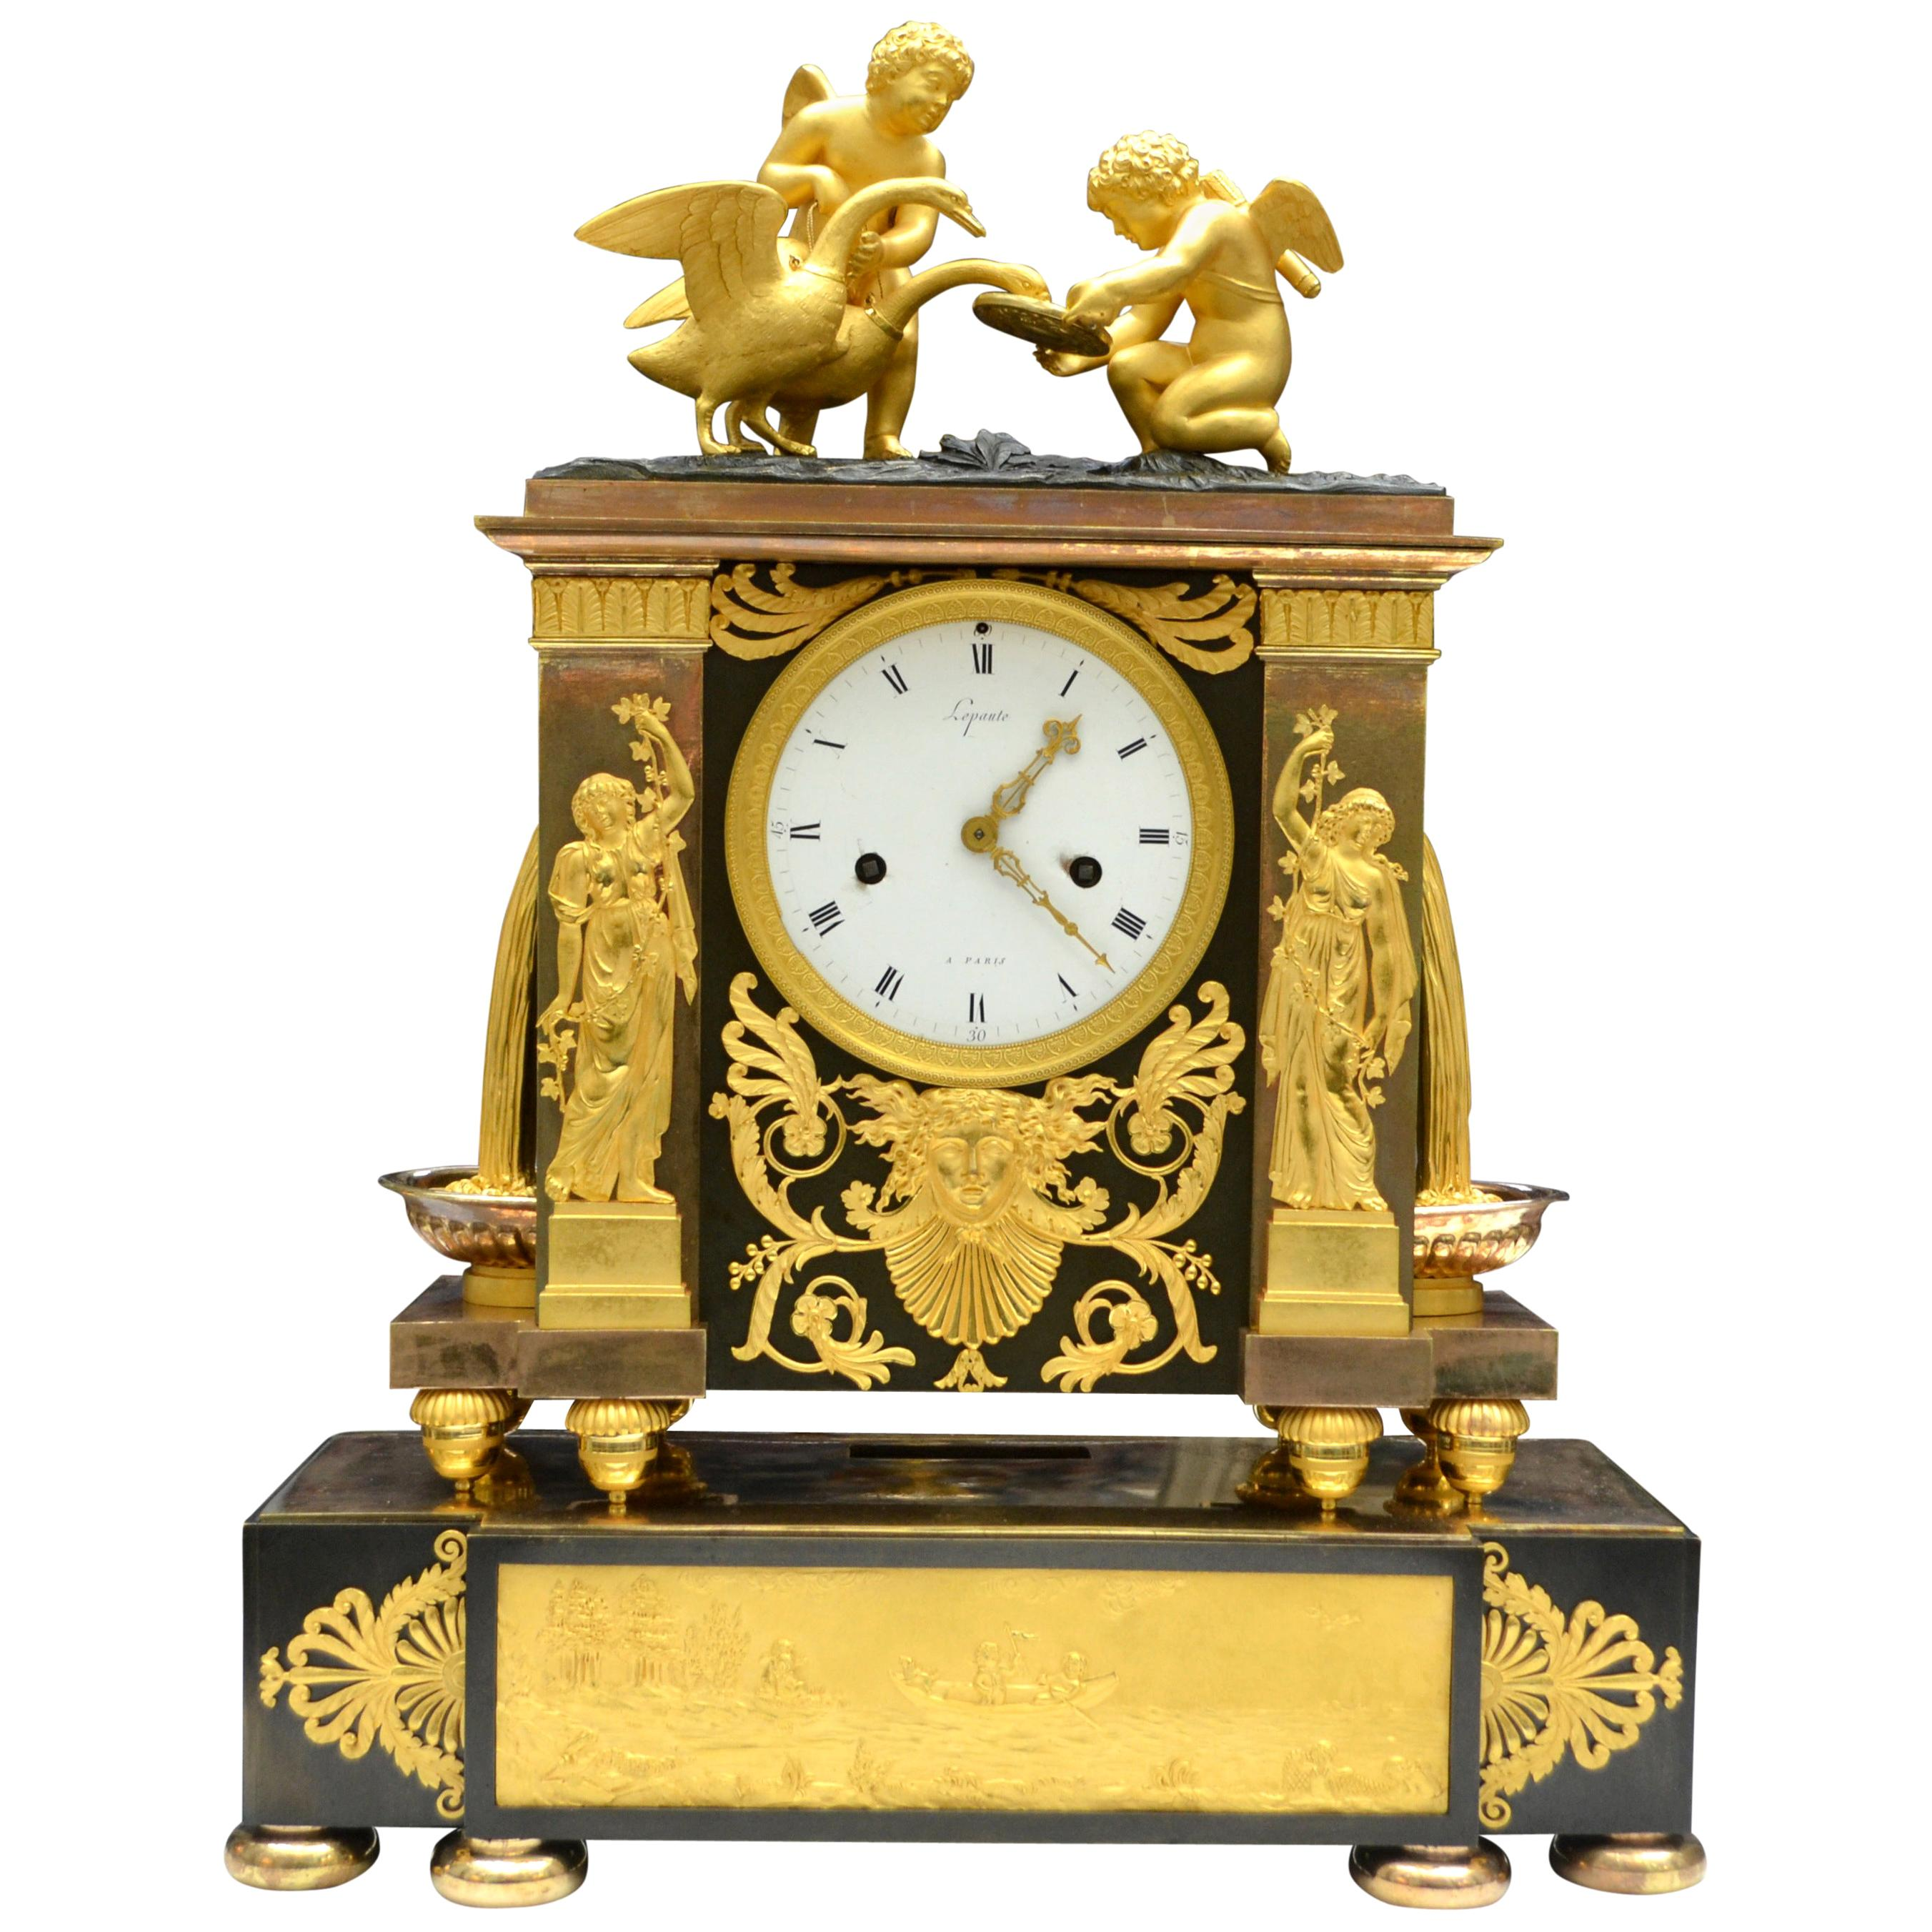 Rare French Empire Clock in Gilt and Patinated Bronze Signed Lepaute